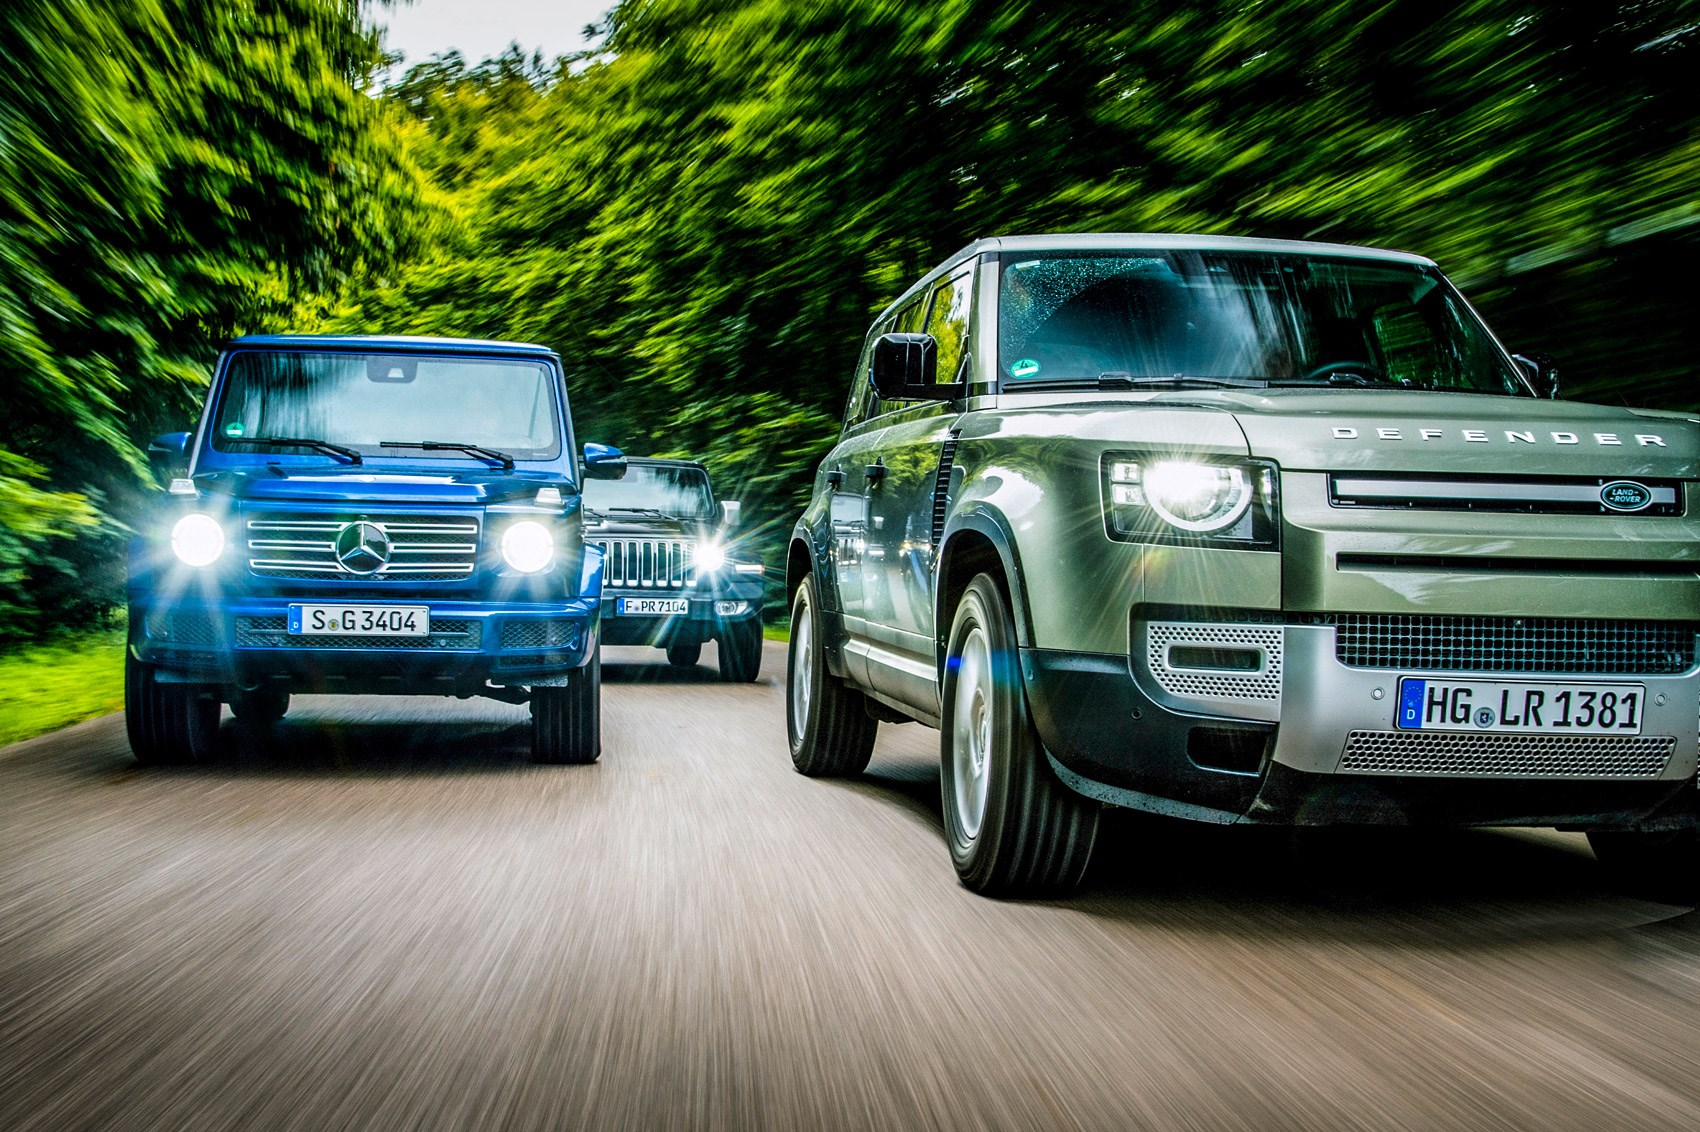 Land Rover Defender Vs Jeep Wrangler Vs Mercedes G Class Group Test Review Car Magazine